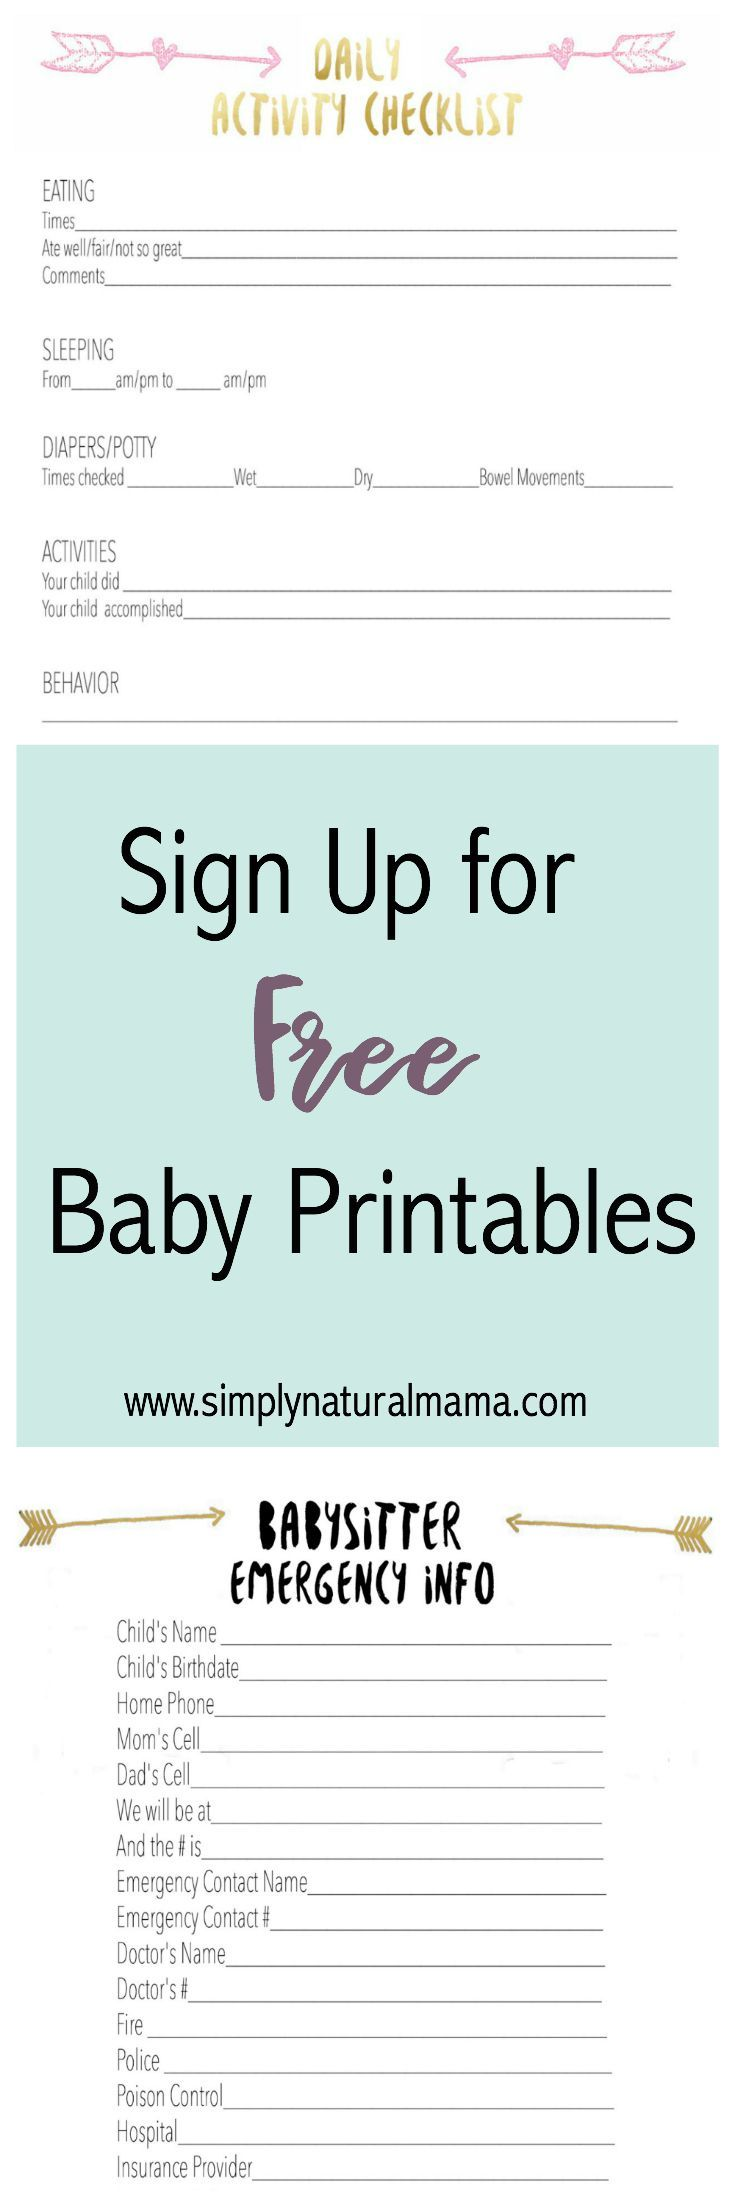 best ideas about babysitter checklist simplynaturalmama com to sign up for two